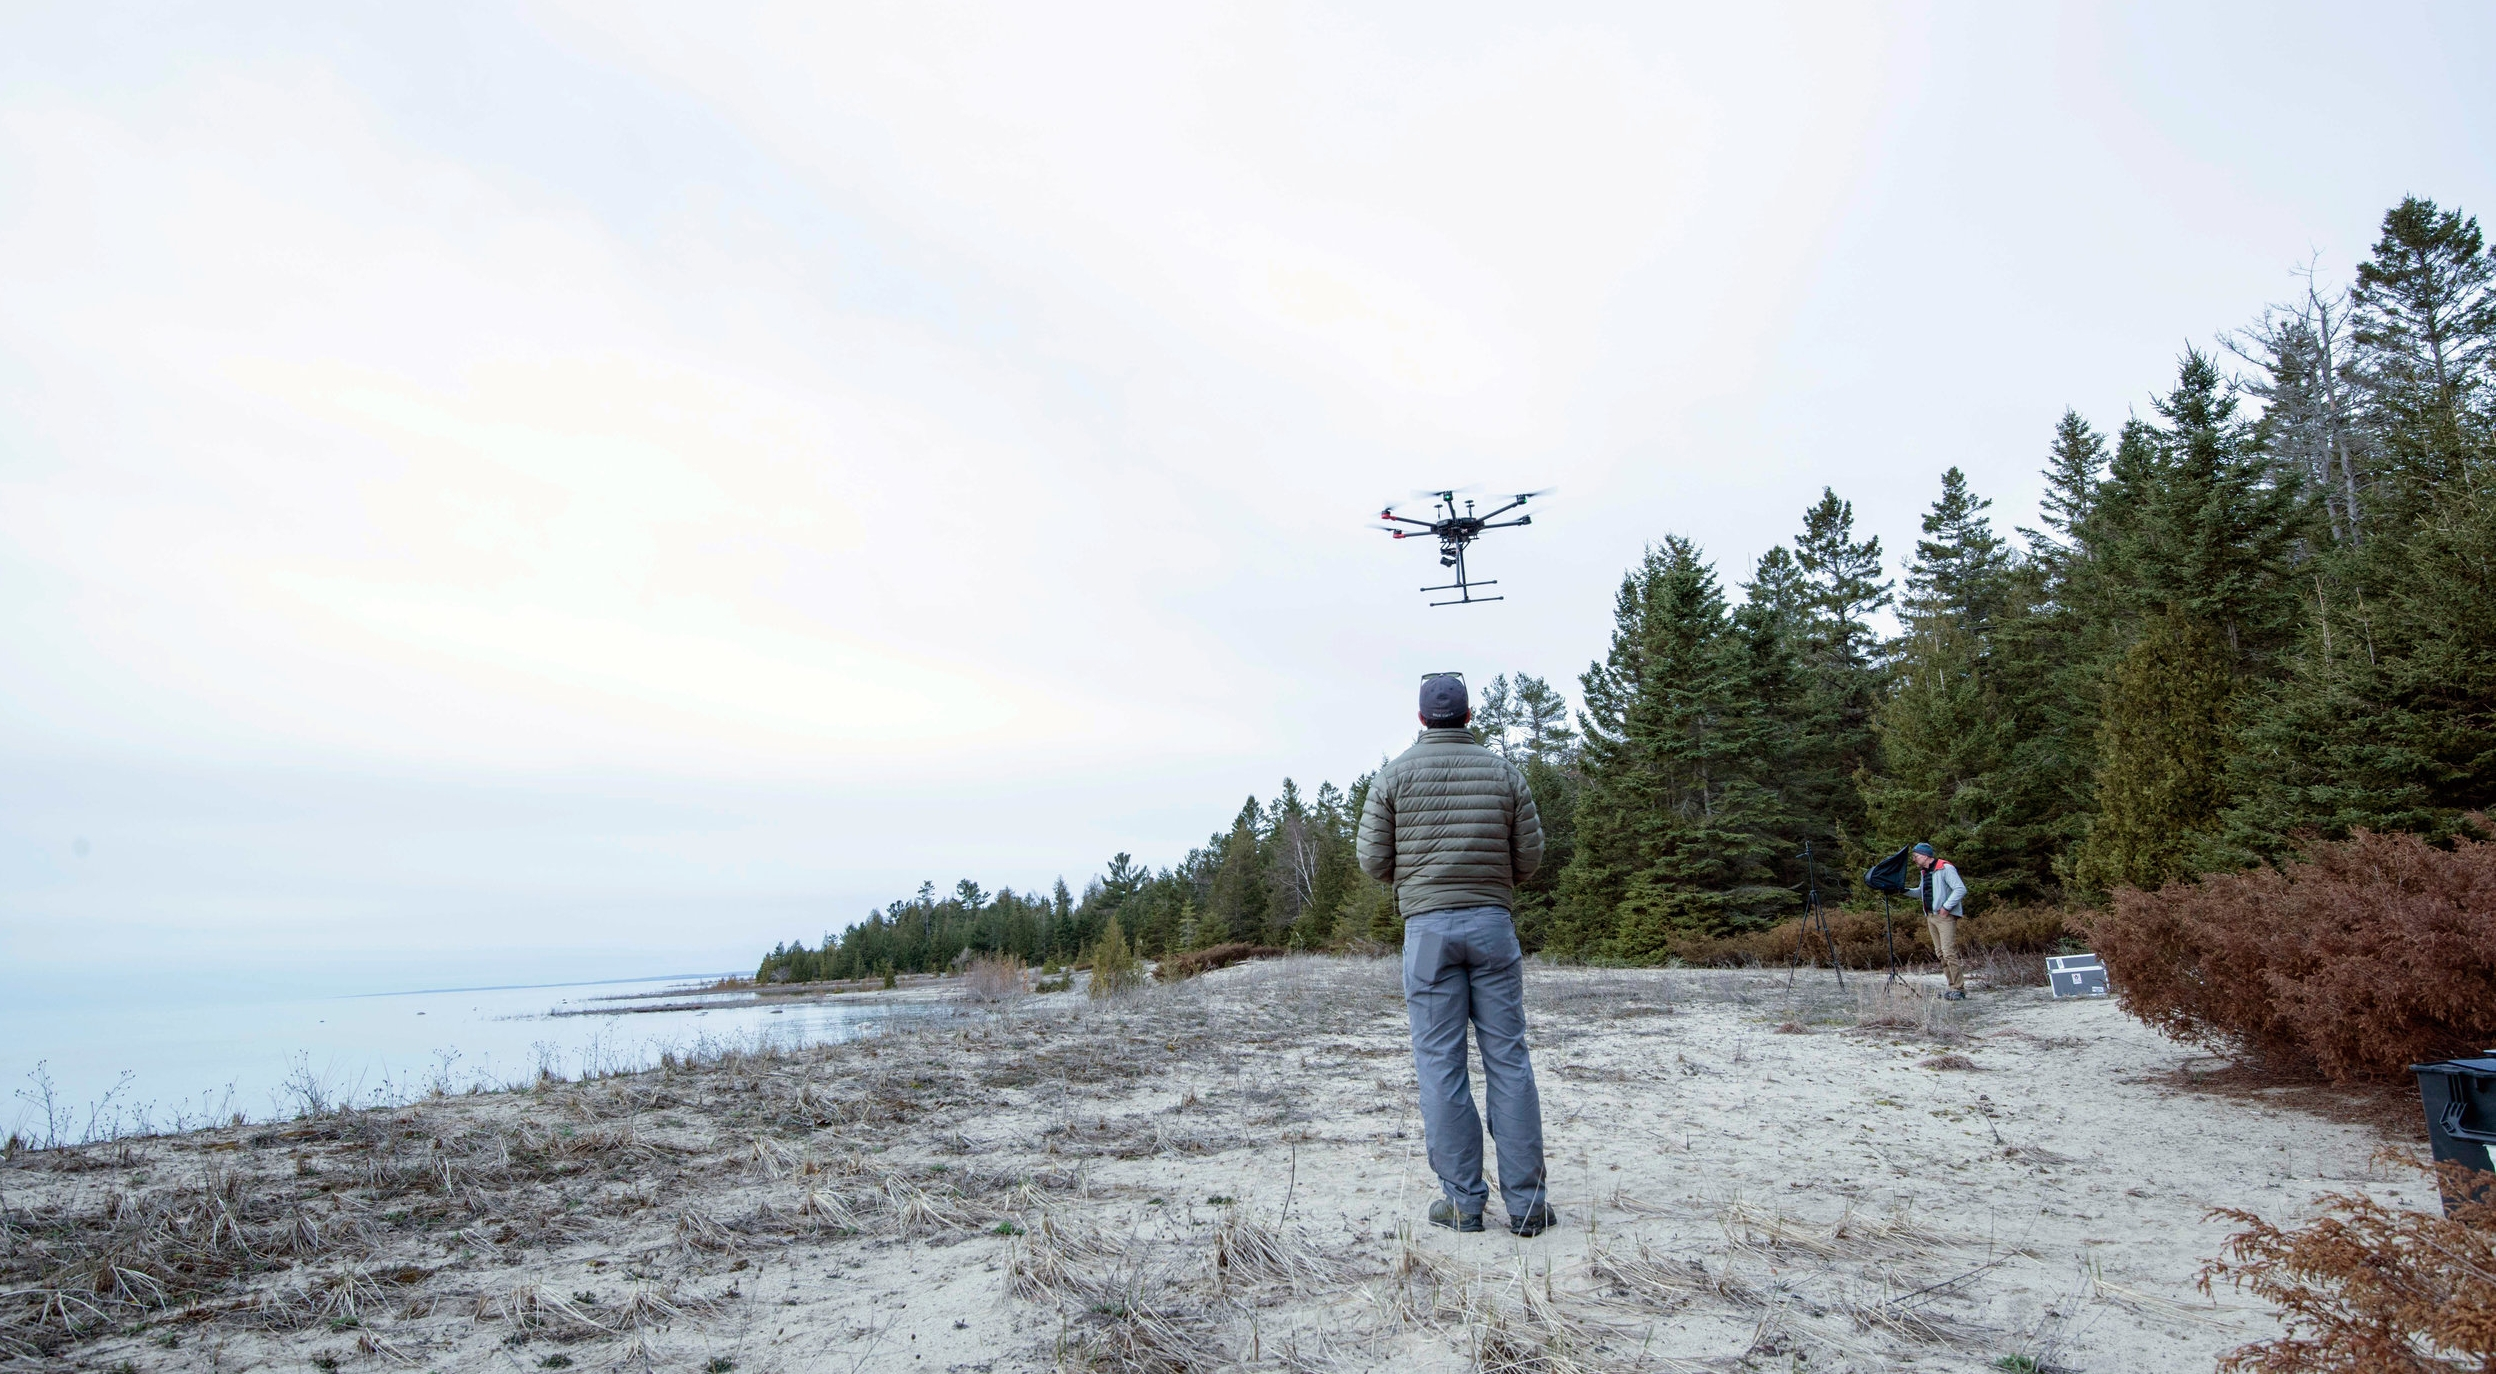 JR flying with NOAA to search for shipwrecks in the Great Lakes